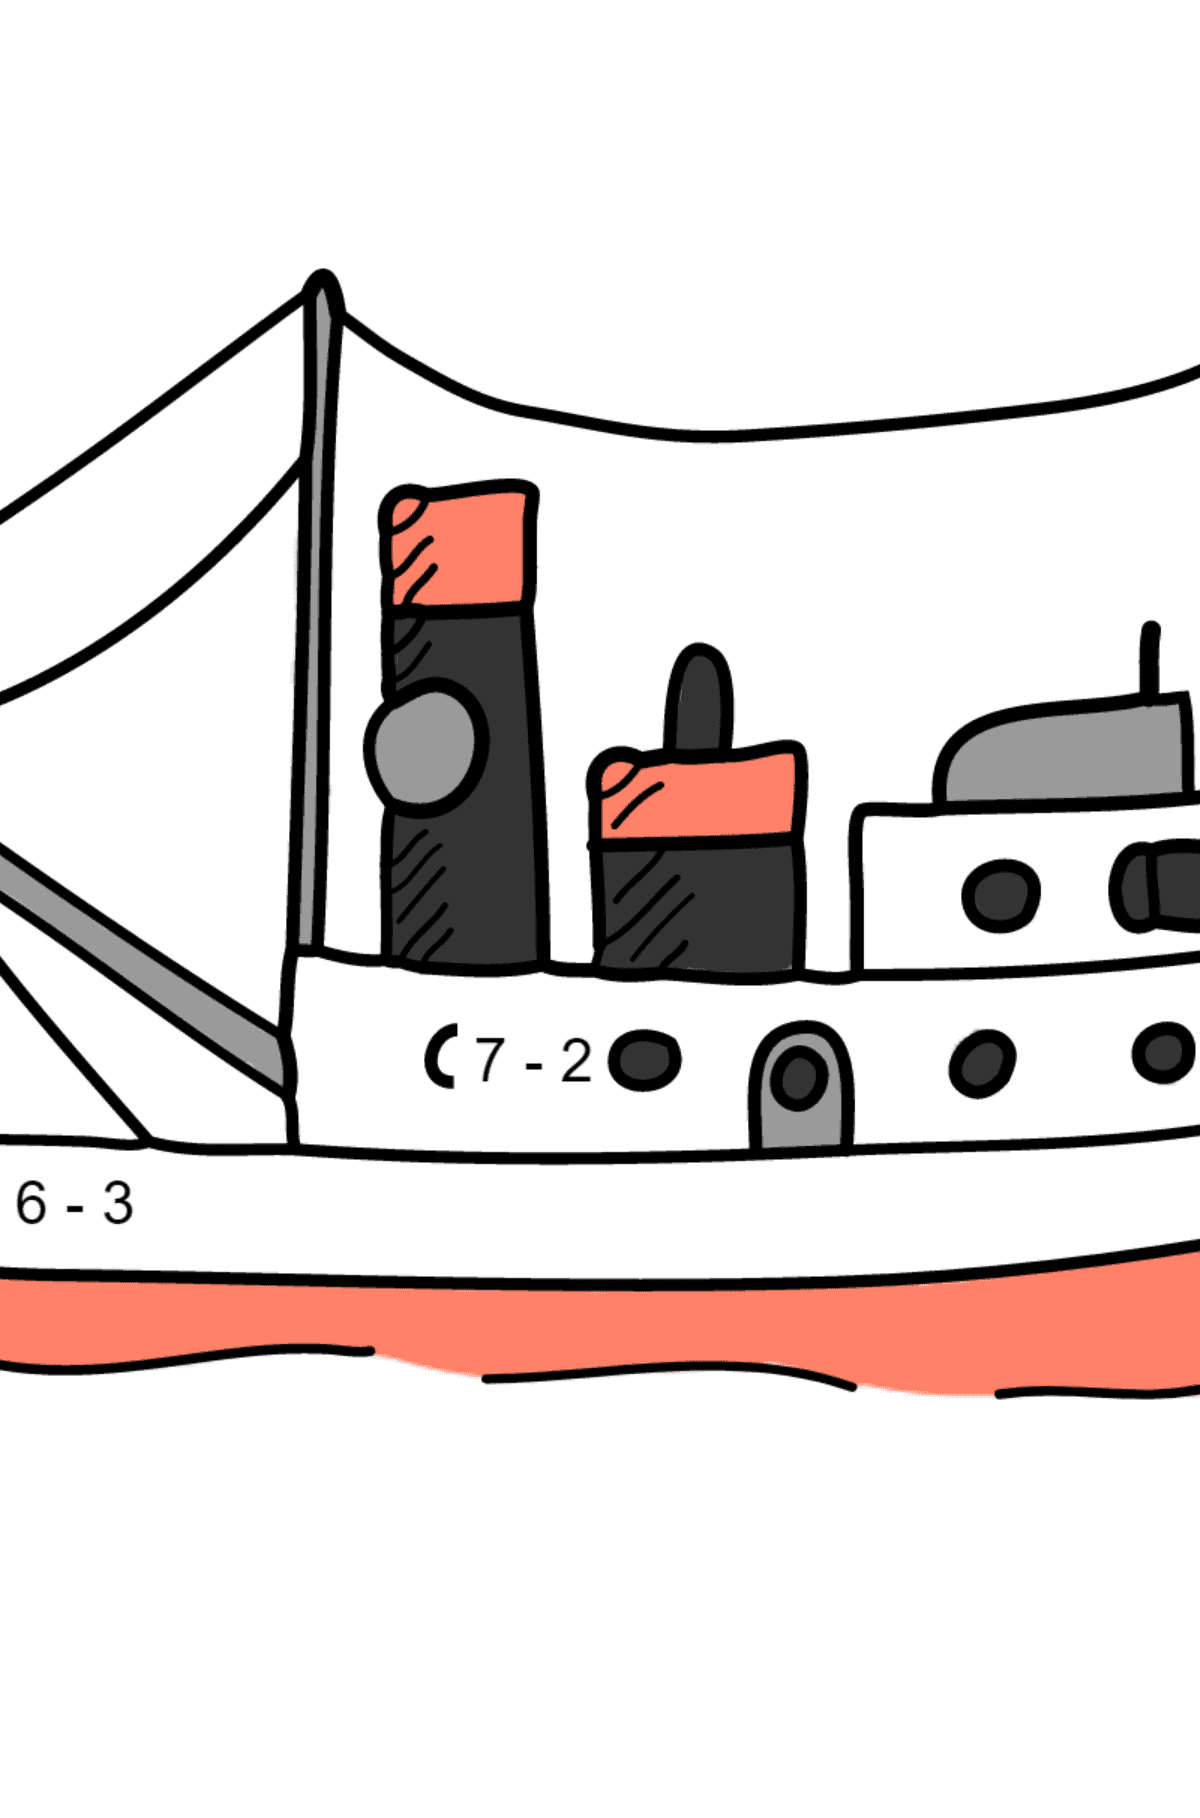 Coloring Page - A Cargo Ship - Math Coloring - Subtraction for Children